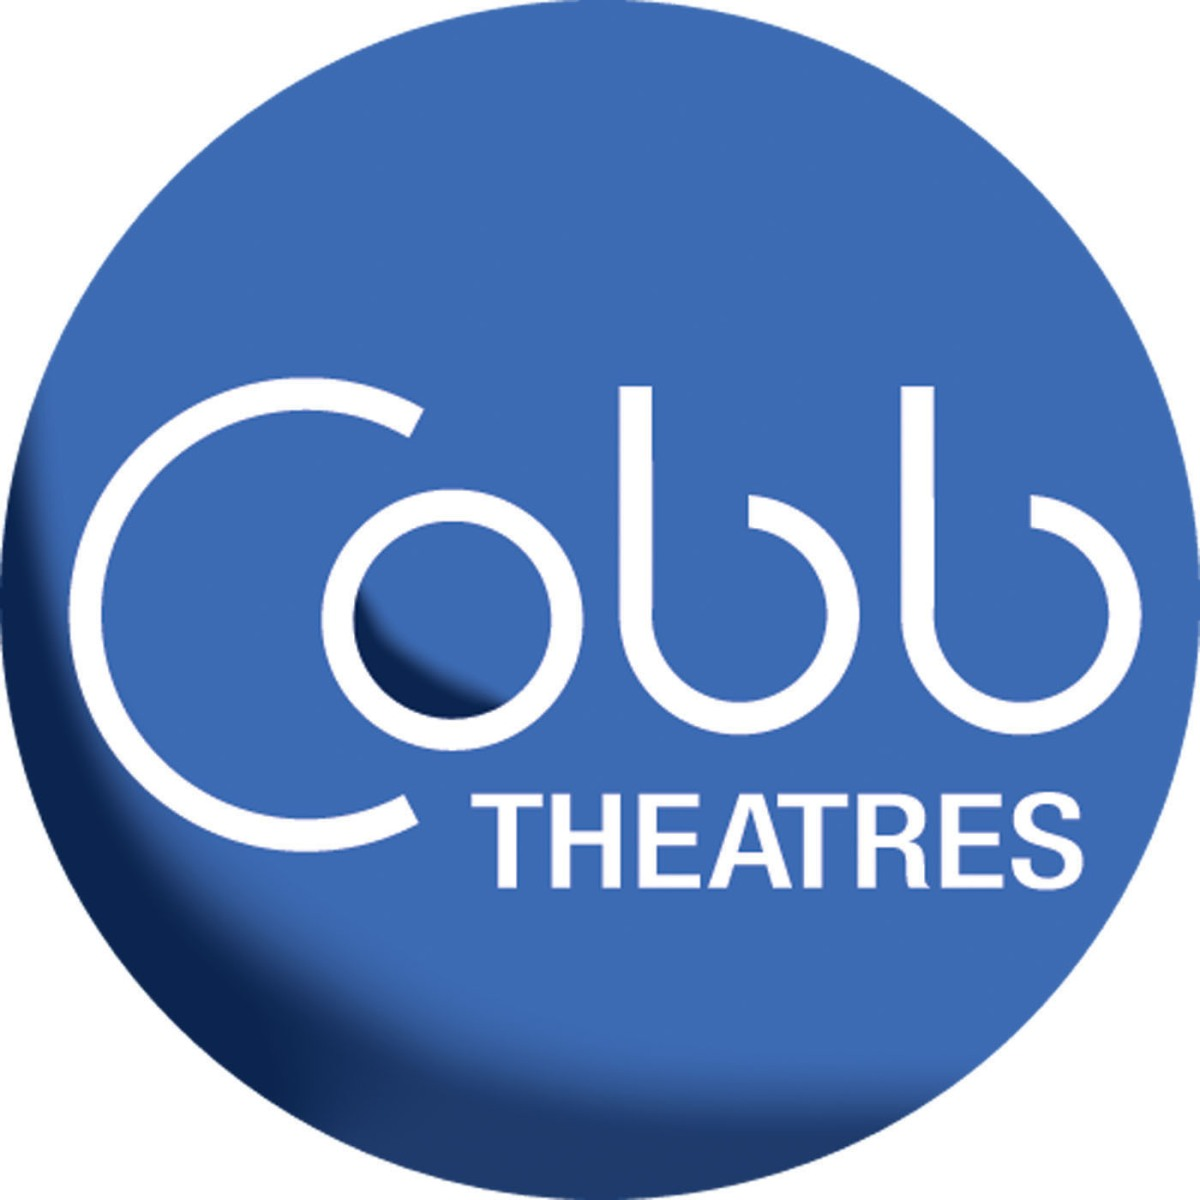 Cobb Theatres Wants You To Be The Judge The Hotspotorlando